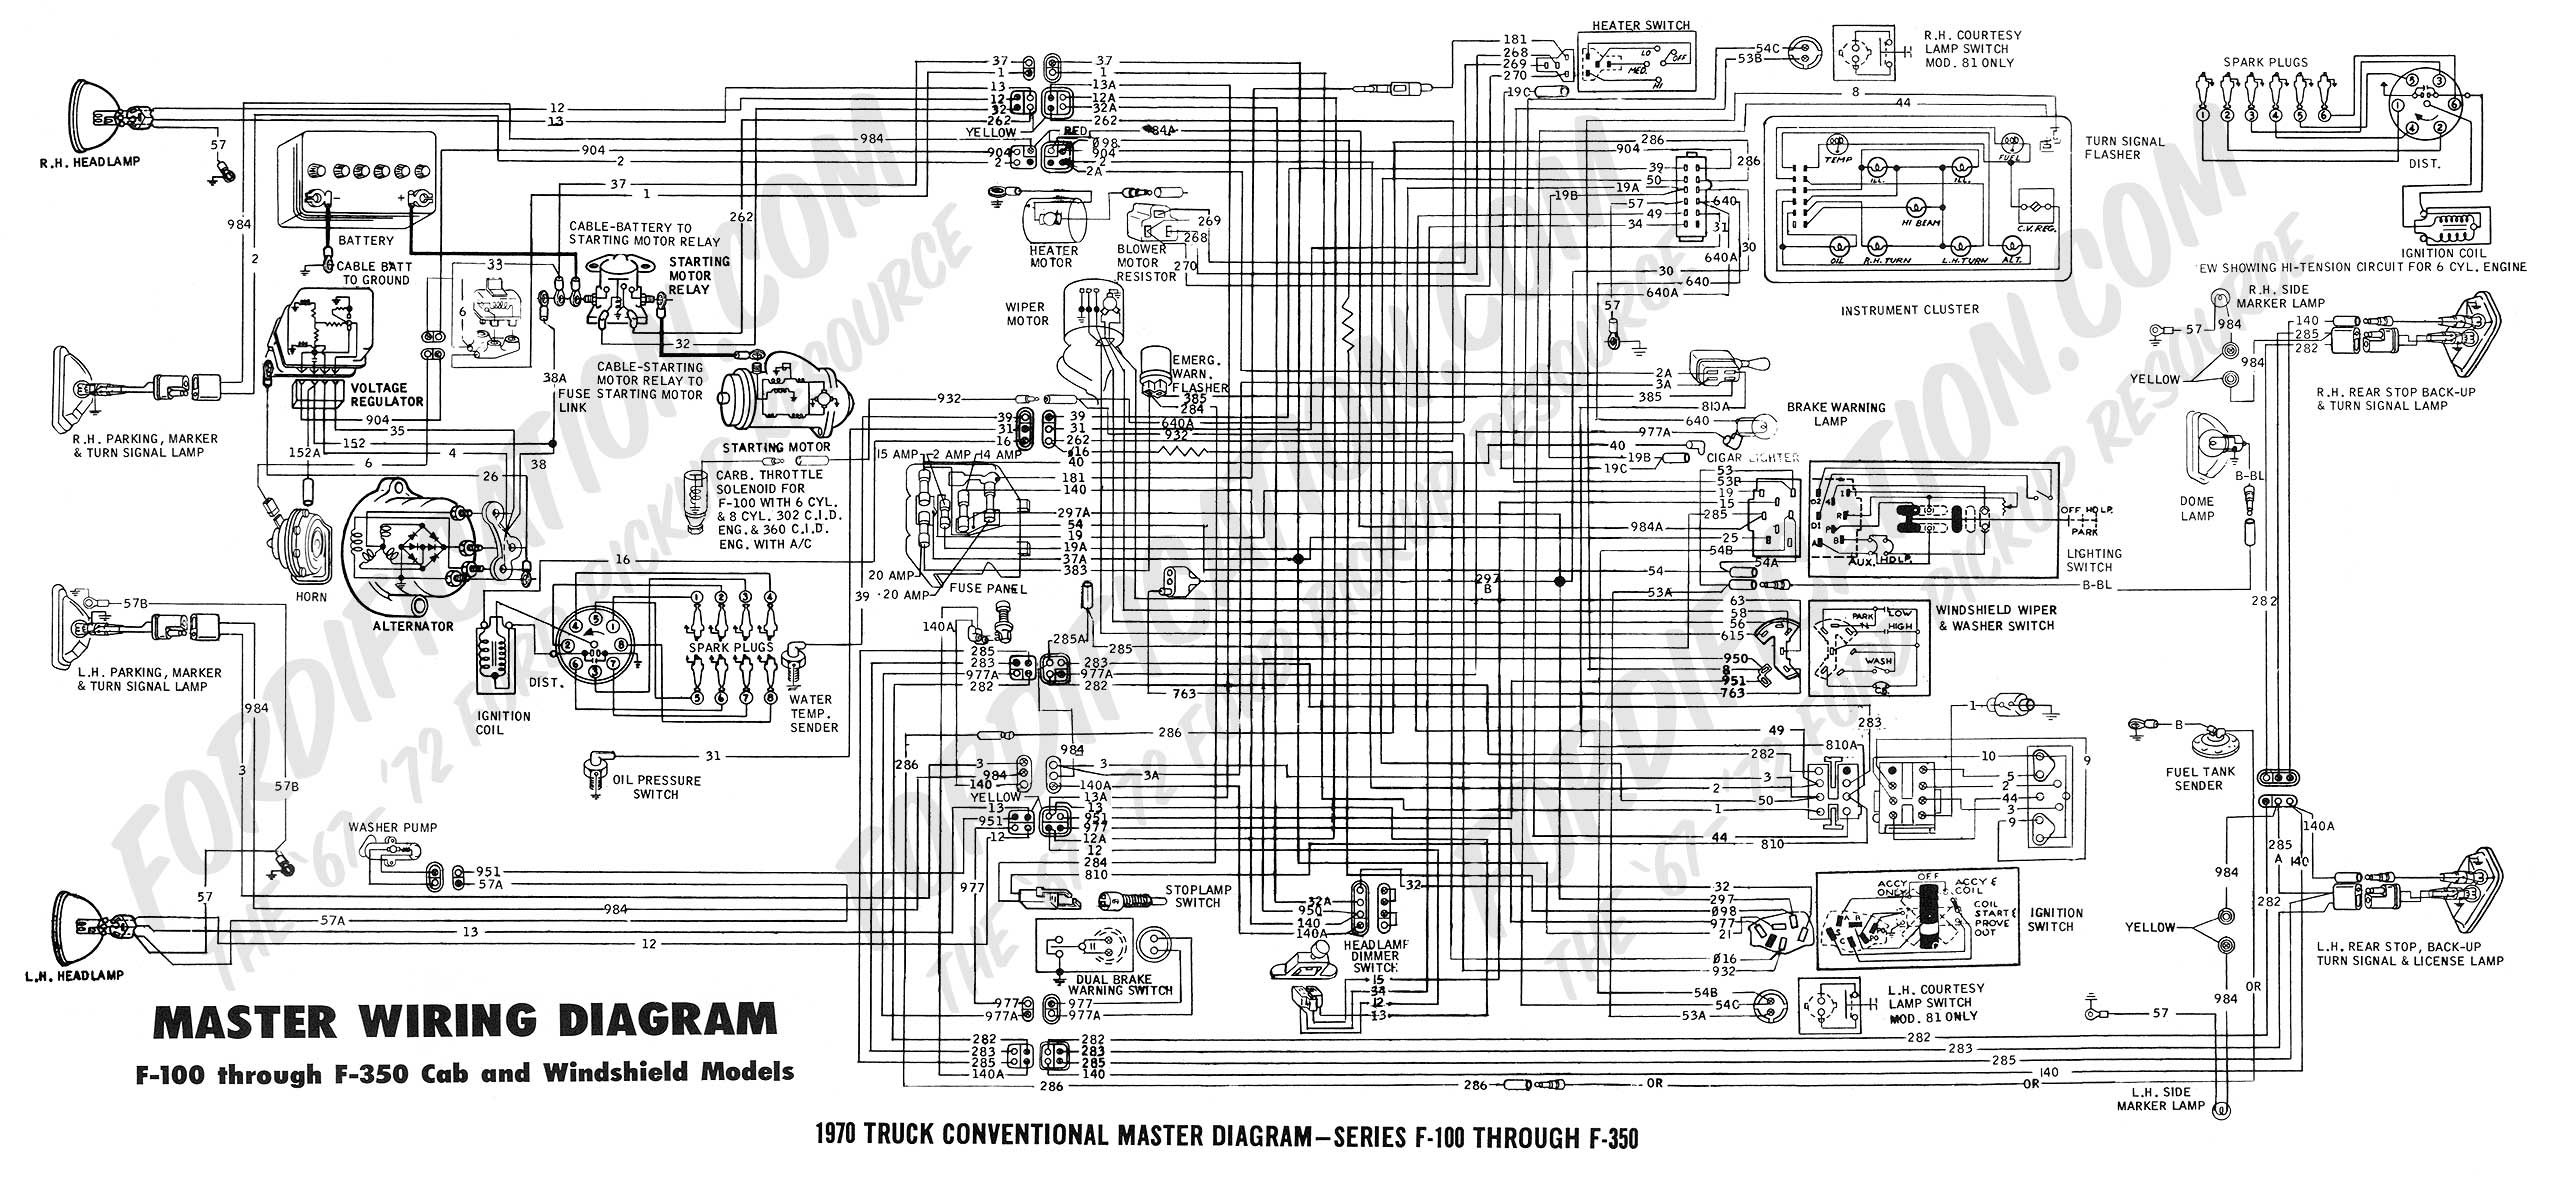 1986 Ford F 150 Engine Diagram 1998 E350 Fuse Panel Wiring Library F700 Diy Enthusiasts Diagrams U2022 Rh Broadwaycomputers Us 2007